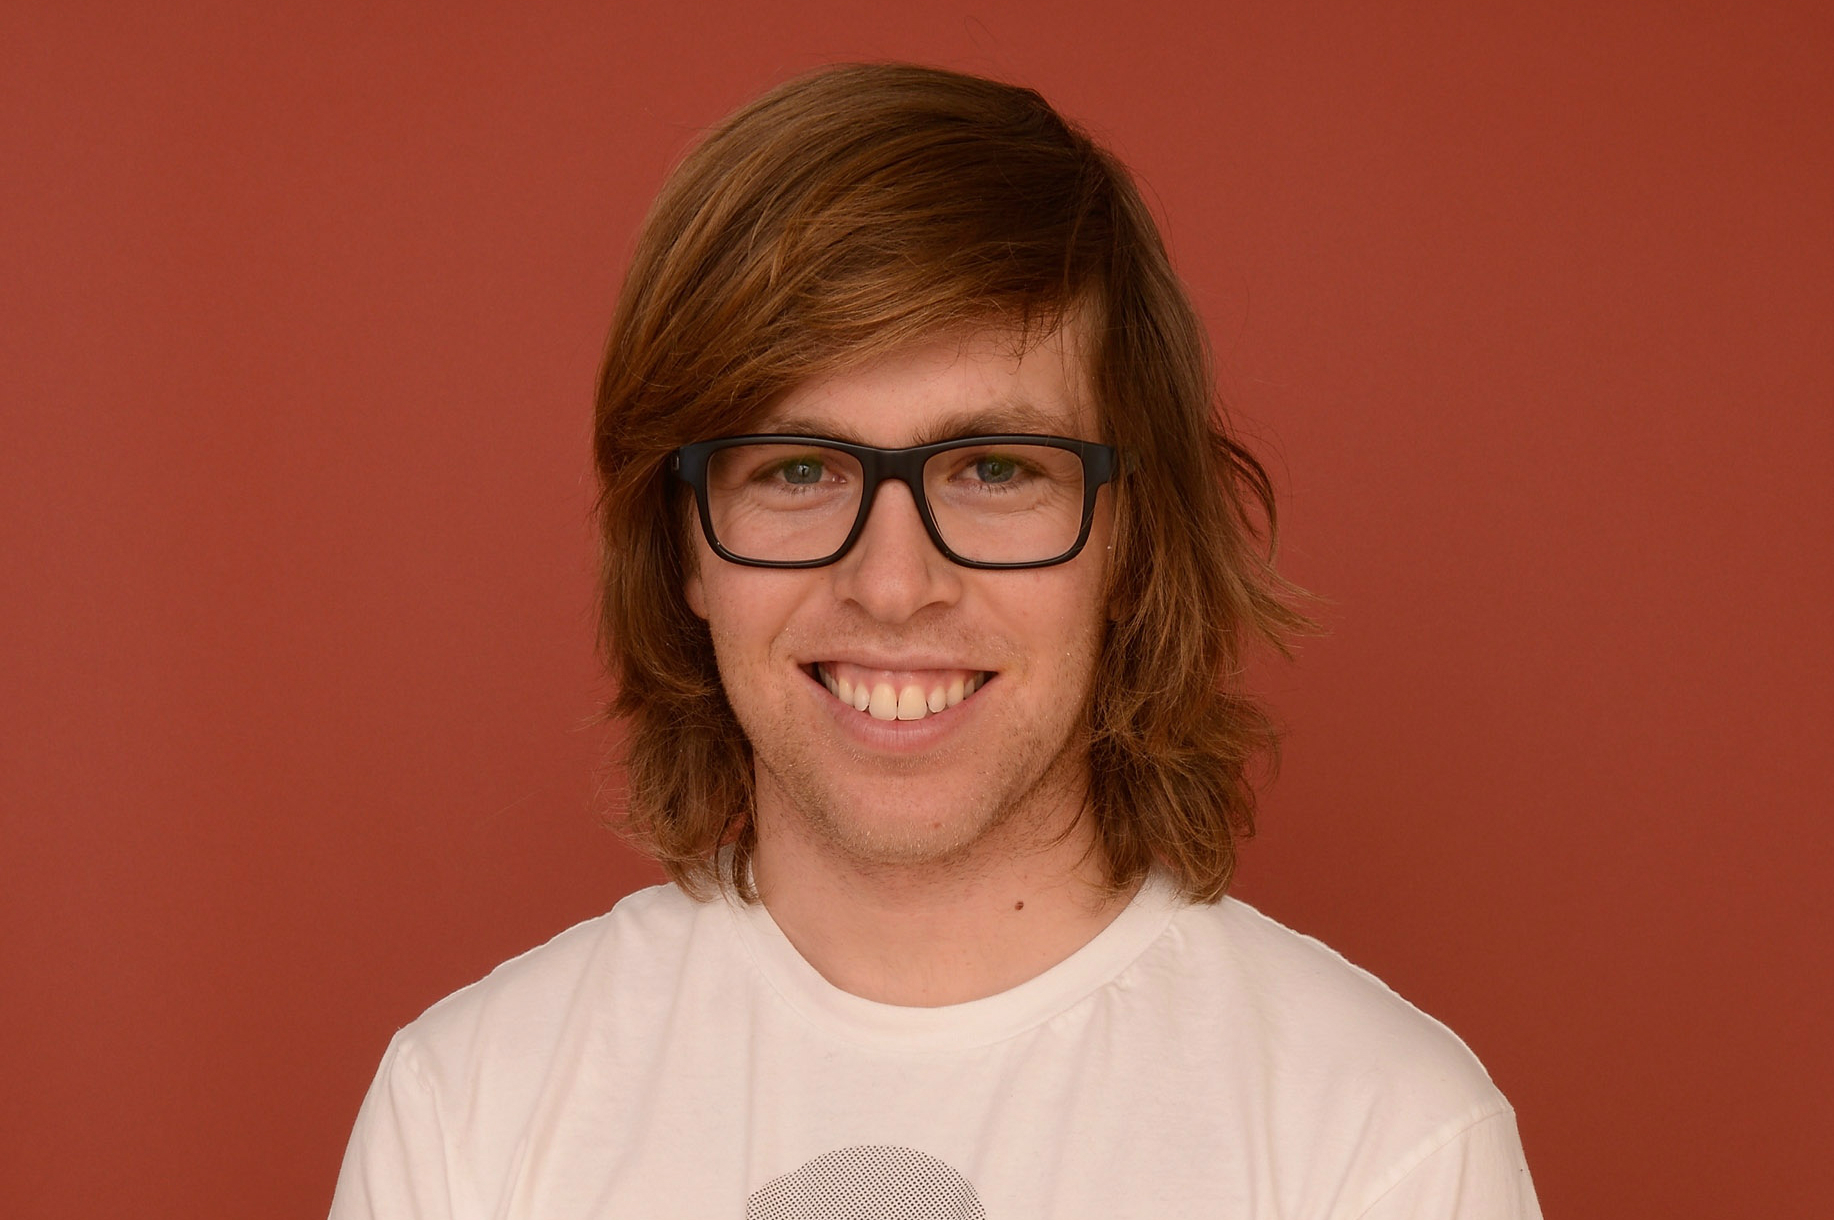 Kevin Pearce at the Sundance Film Festival in Park City, Utah, Jan. 21, 2013. (Larry Busacca/Getty Images)